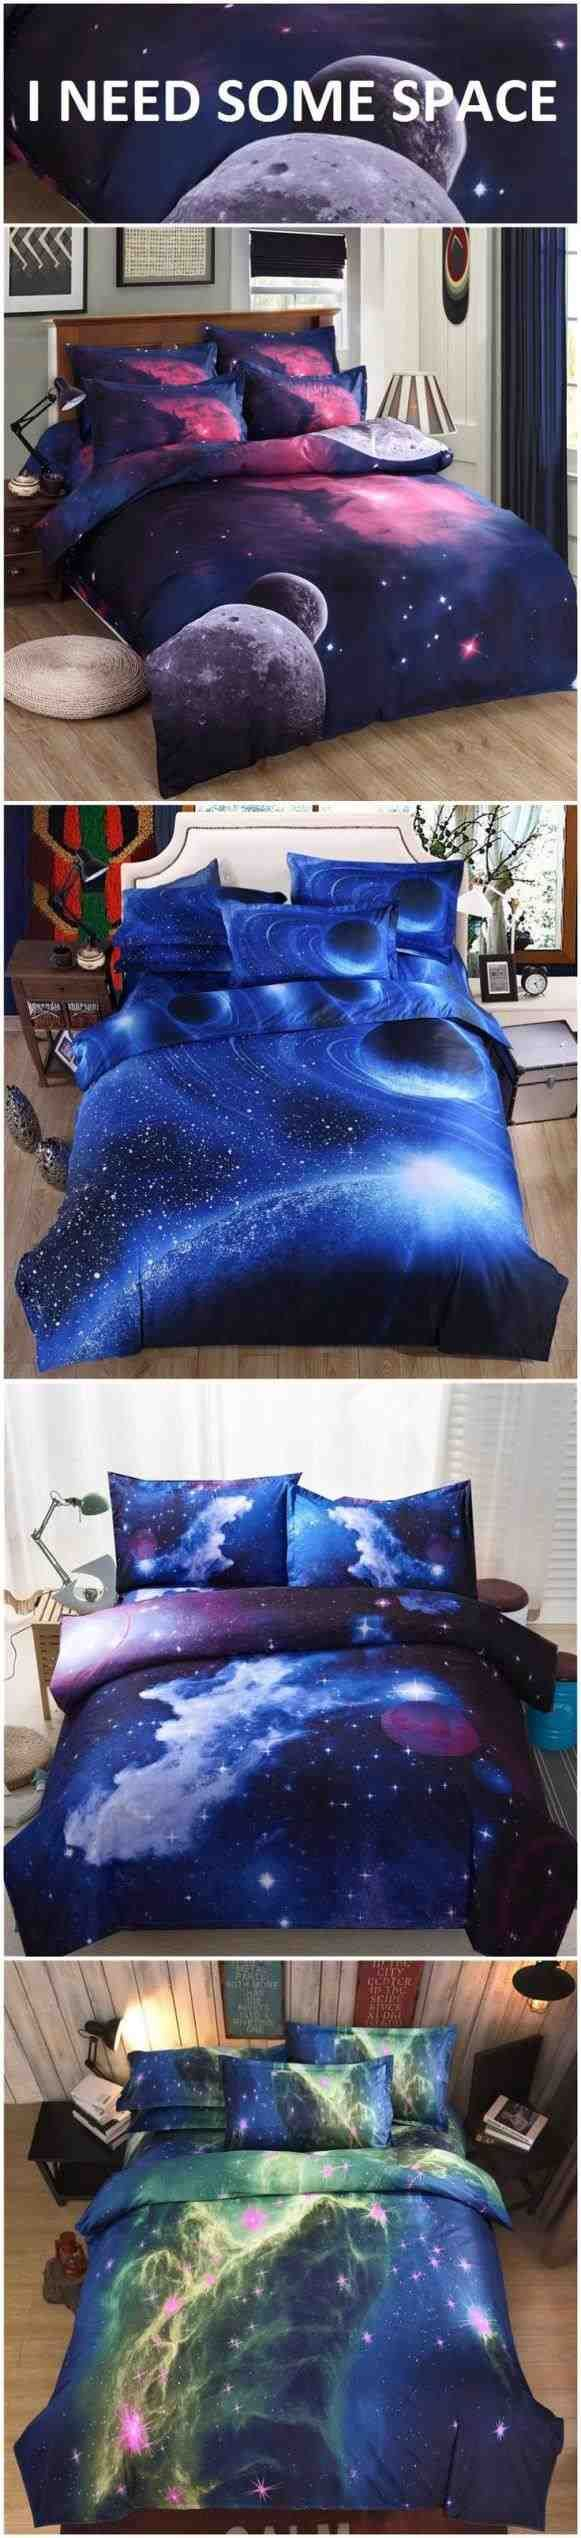 This galaxy bed sheets - image of: luxury bedding california king beds. tea cabin queen quilt. cheap bedding bedroom queen size bed sheets for girls queen size bed sets  cheap bedding king. outer space bedding sets. turquoise with white heart anchors duvet cover and pillow shams set. colcha em ponto capitone. blue & pink toddler girl owl bedding 4pc bed in a bag set-comforter & sheets-birds  flowers butterfly. getsubject() aeproduct. star wars episode vii rule the